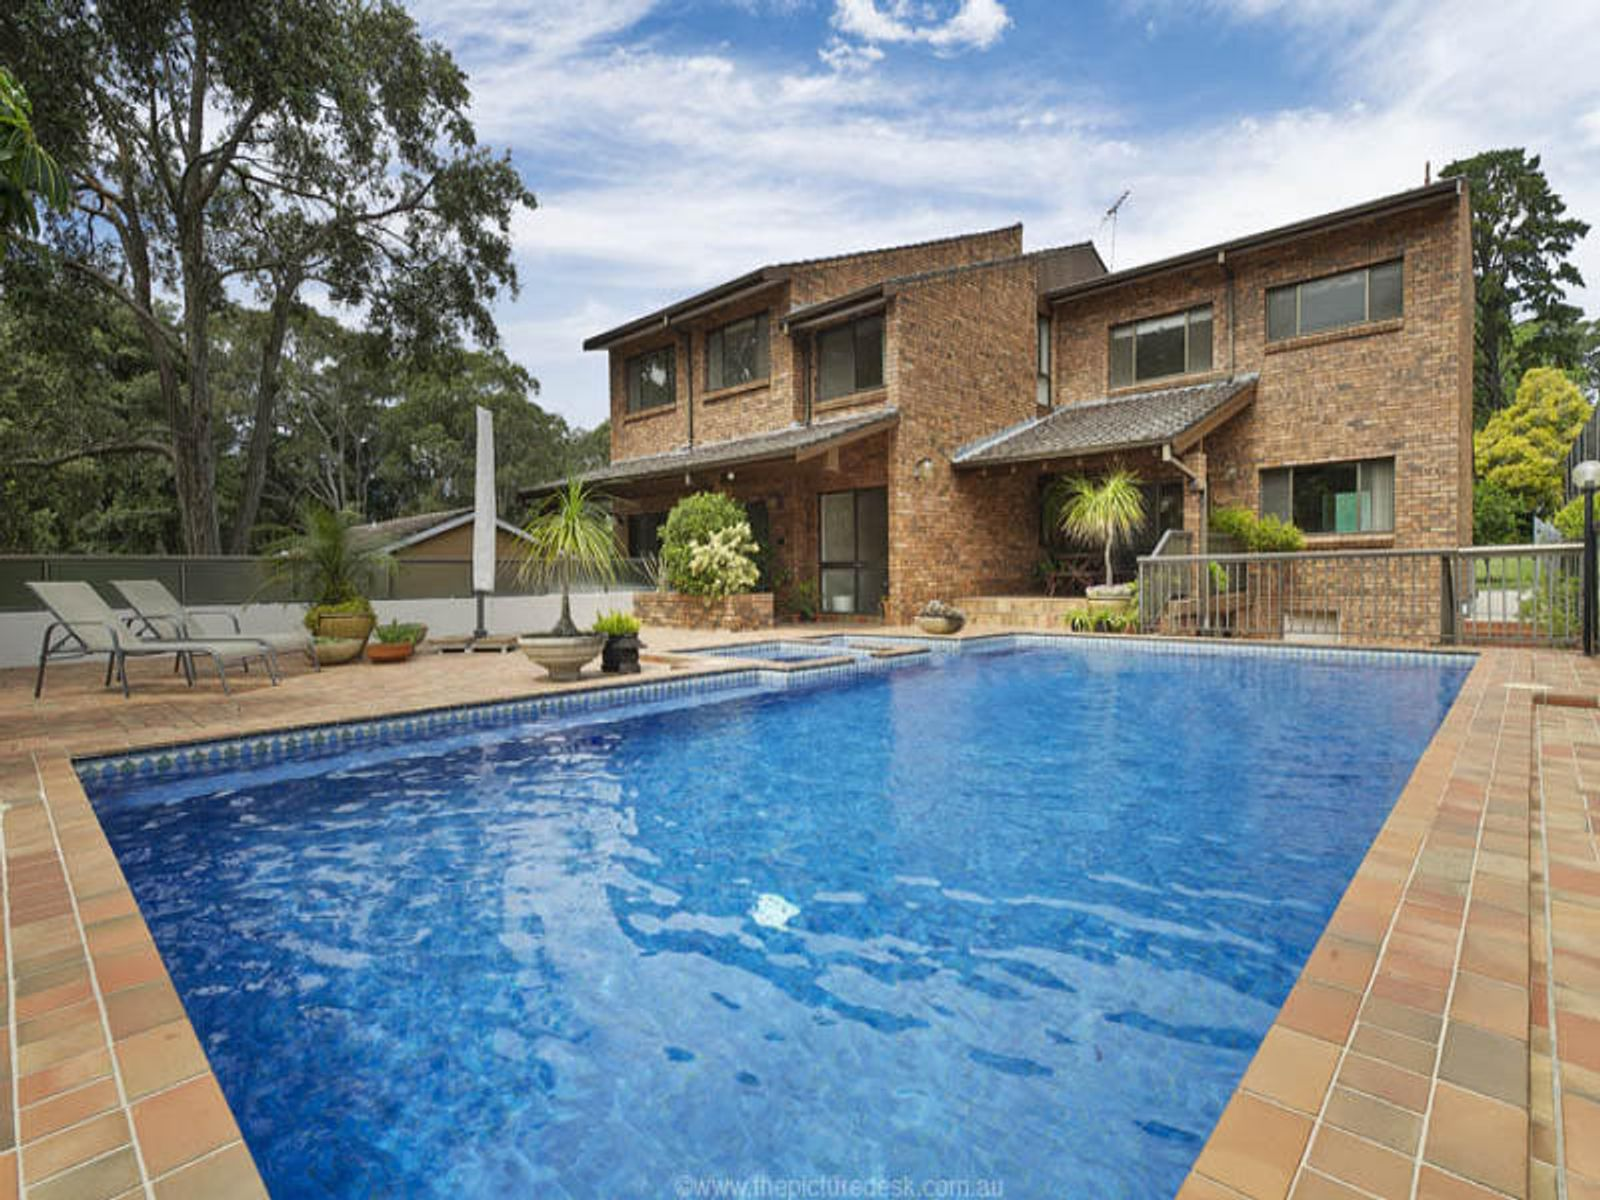 A17 Hunter Avenue, St Ives, NSW 2075